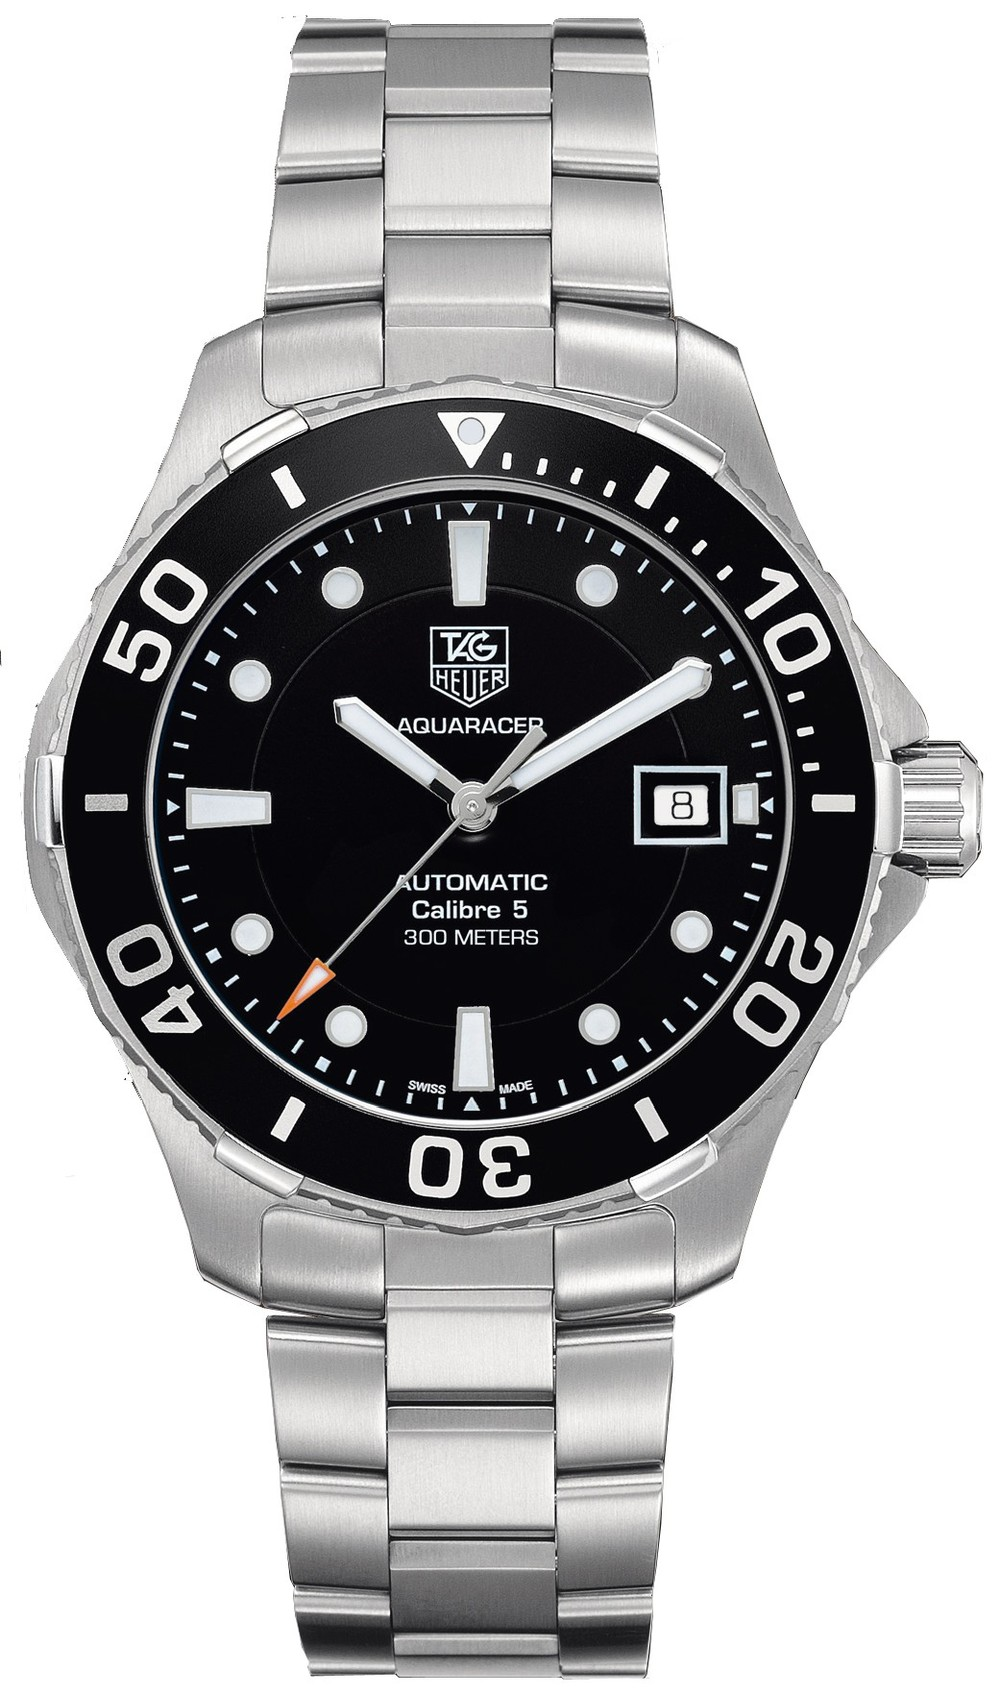 Tag Heuer cermaic dial and bezel aquaracer